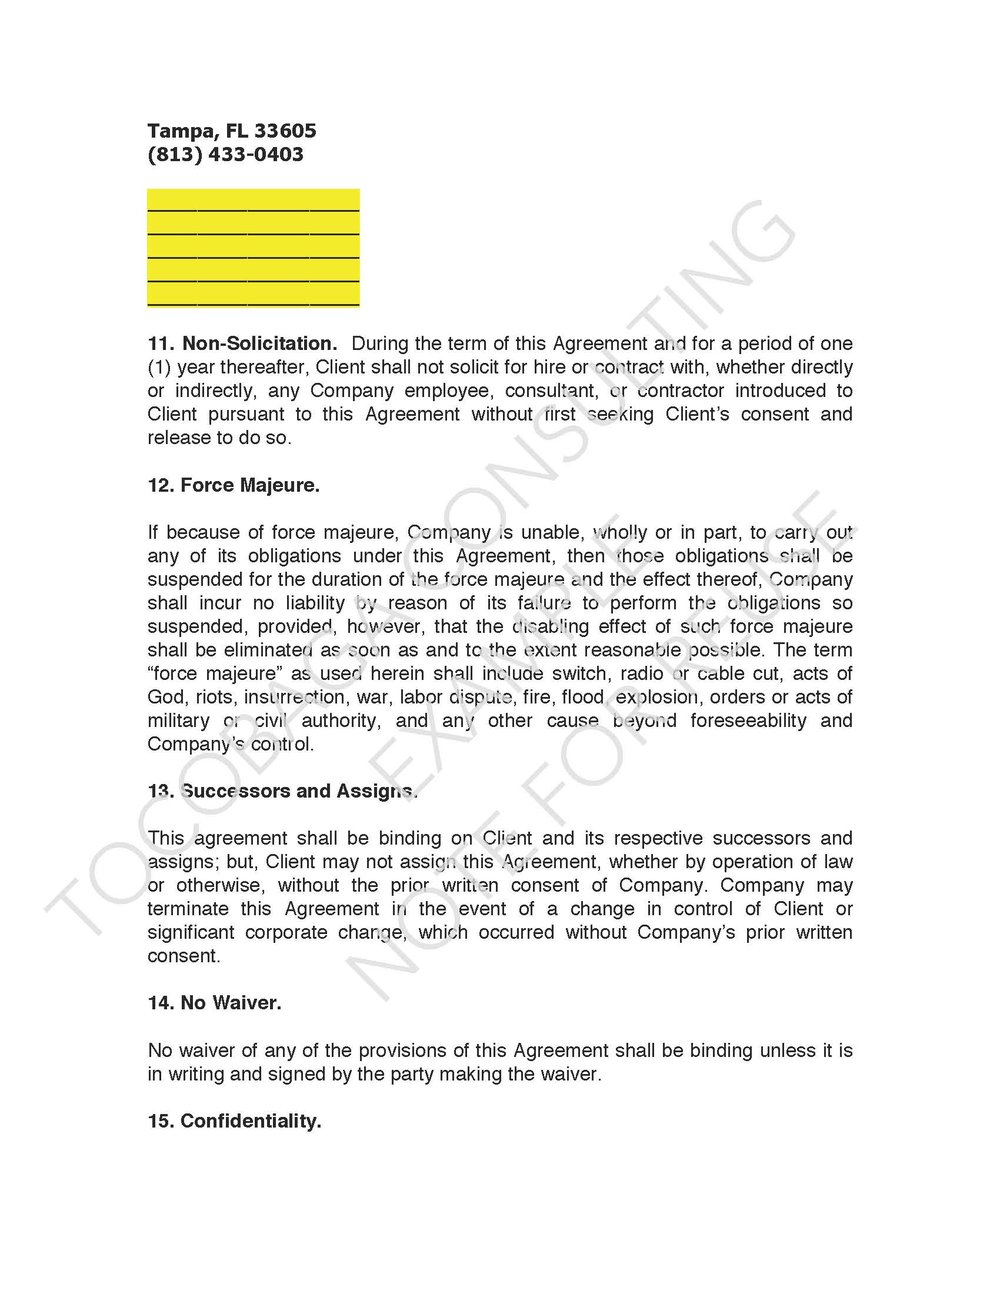 Company Services Agreement EXAMPLE_Page_06.jpg